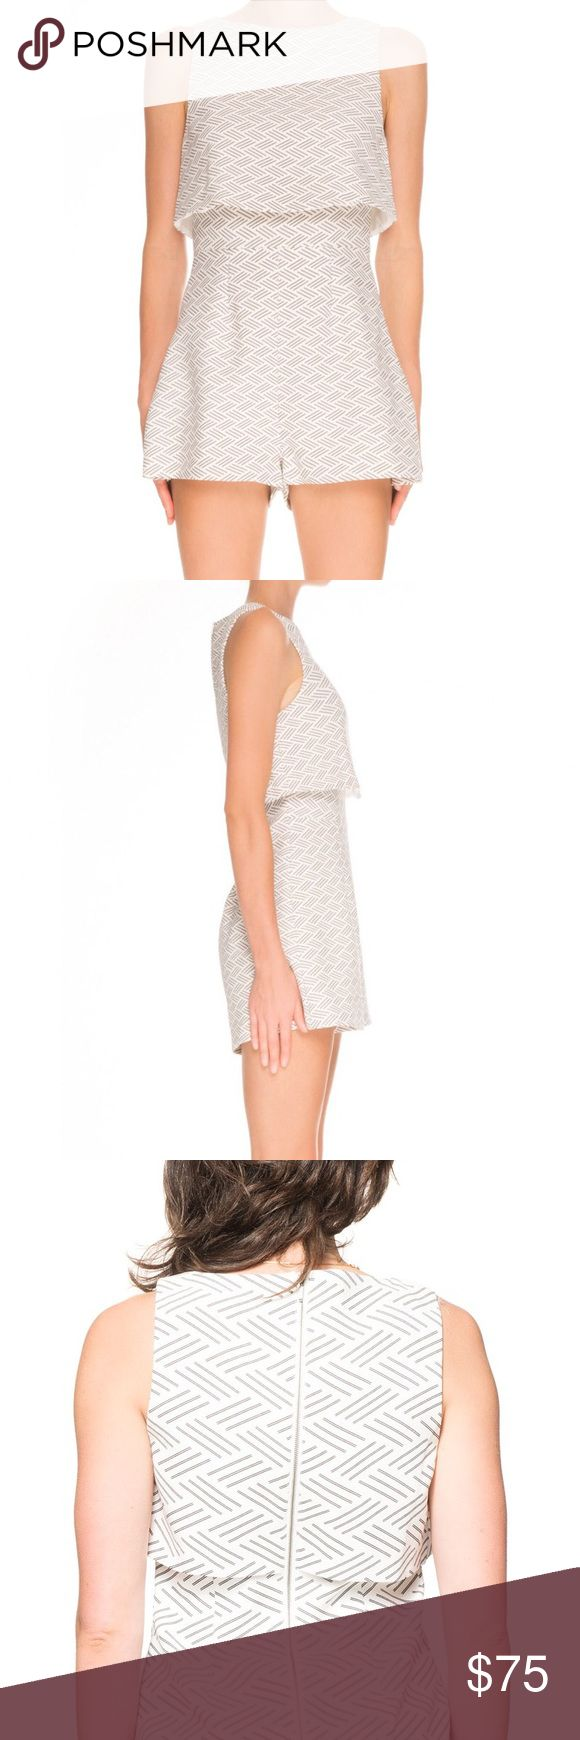 KEEPSAKE THE LABEL Motion Picture Playsuit/Romper The Motion Picture Playsuit is a fitted playsuit with a flared crop top overlay. It has an exposed back zip and is available in Keepsake's exclusive Basket Weave print. This tight, high-necked playsuit from Keepsake The Label features their exclusive large basket weave print in Ivory. It is fully lined with a loose crop top overlay and a silver zip up the back. Limited edition!  Main: 96% Polyester & 4% Elastane Lining: 100% Polyester…